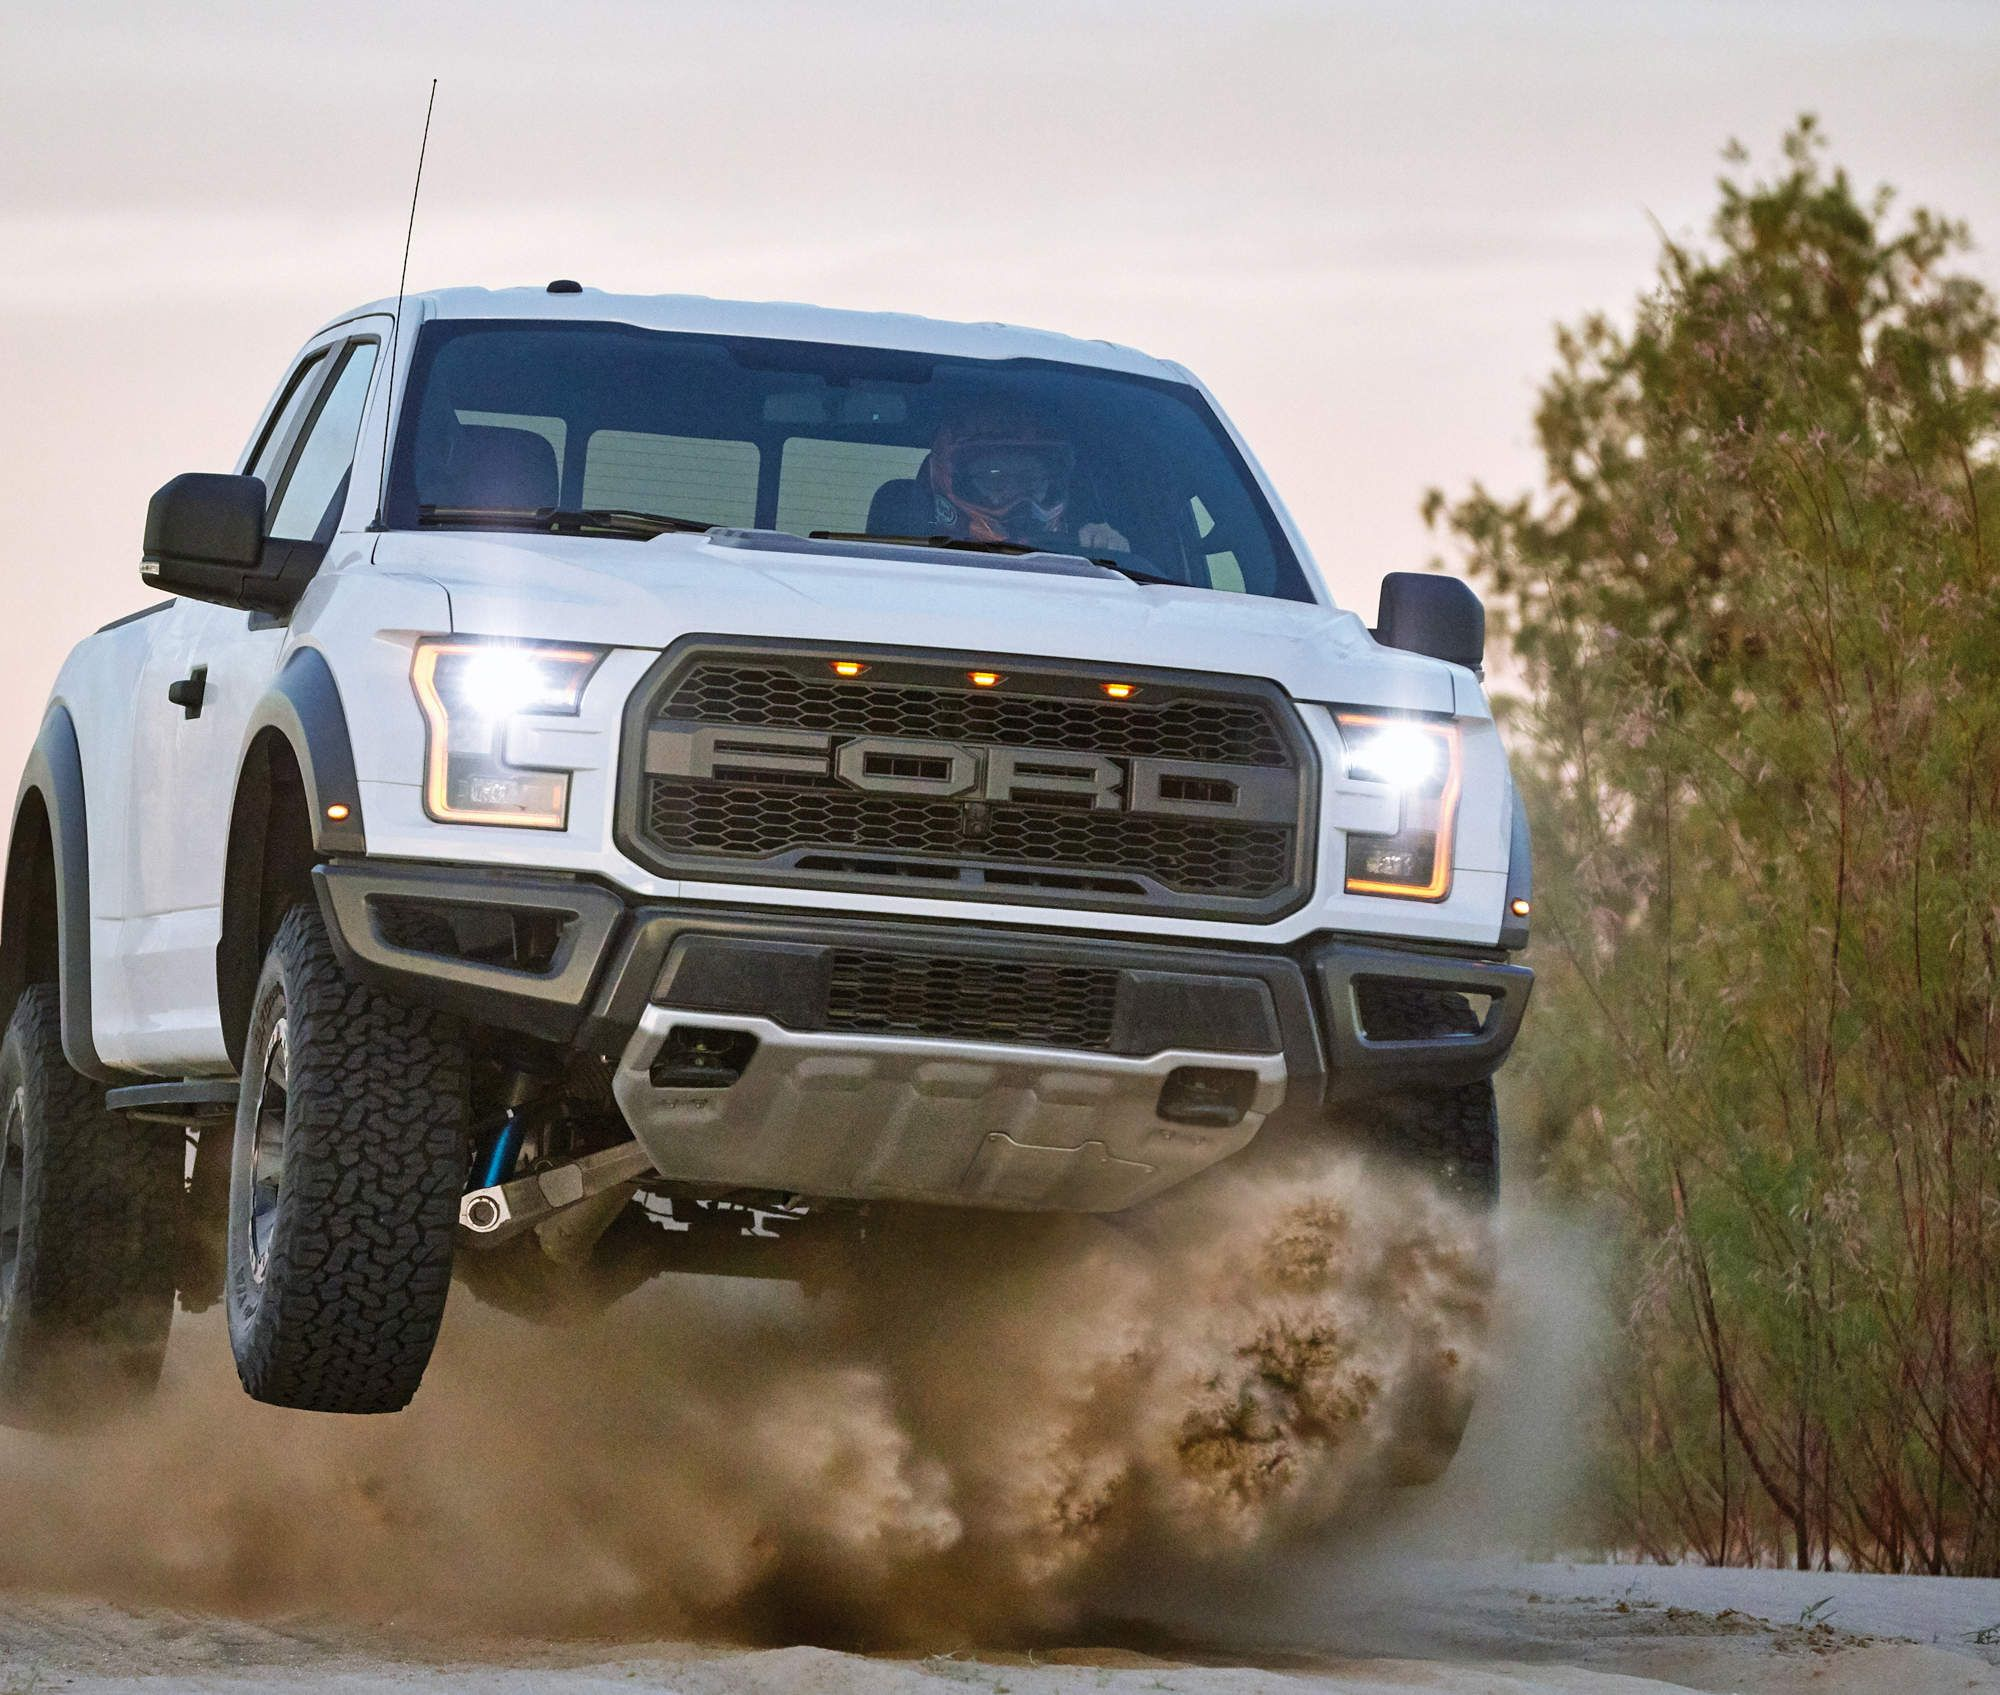 We drove the new 2017 ford raptor the most badass f 150 ever built